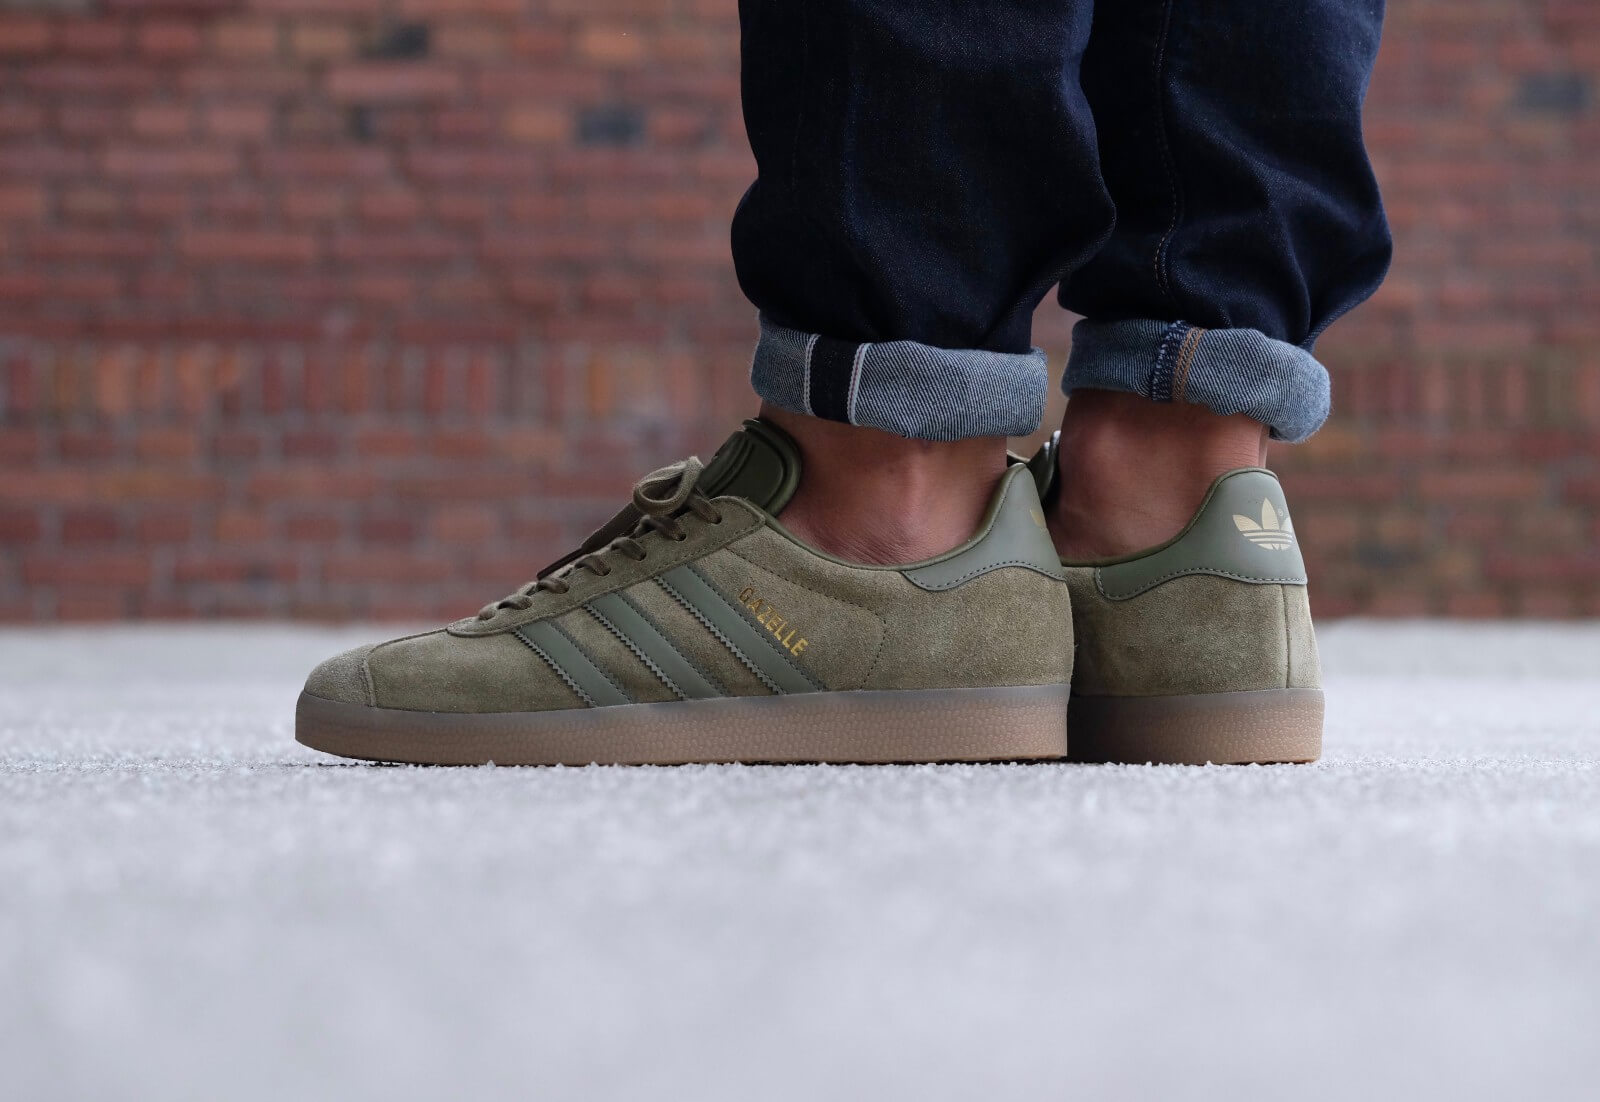 date de sortie: adc68 e69a3 adidas gazelle olive on sale > OFF47% Discounted